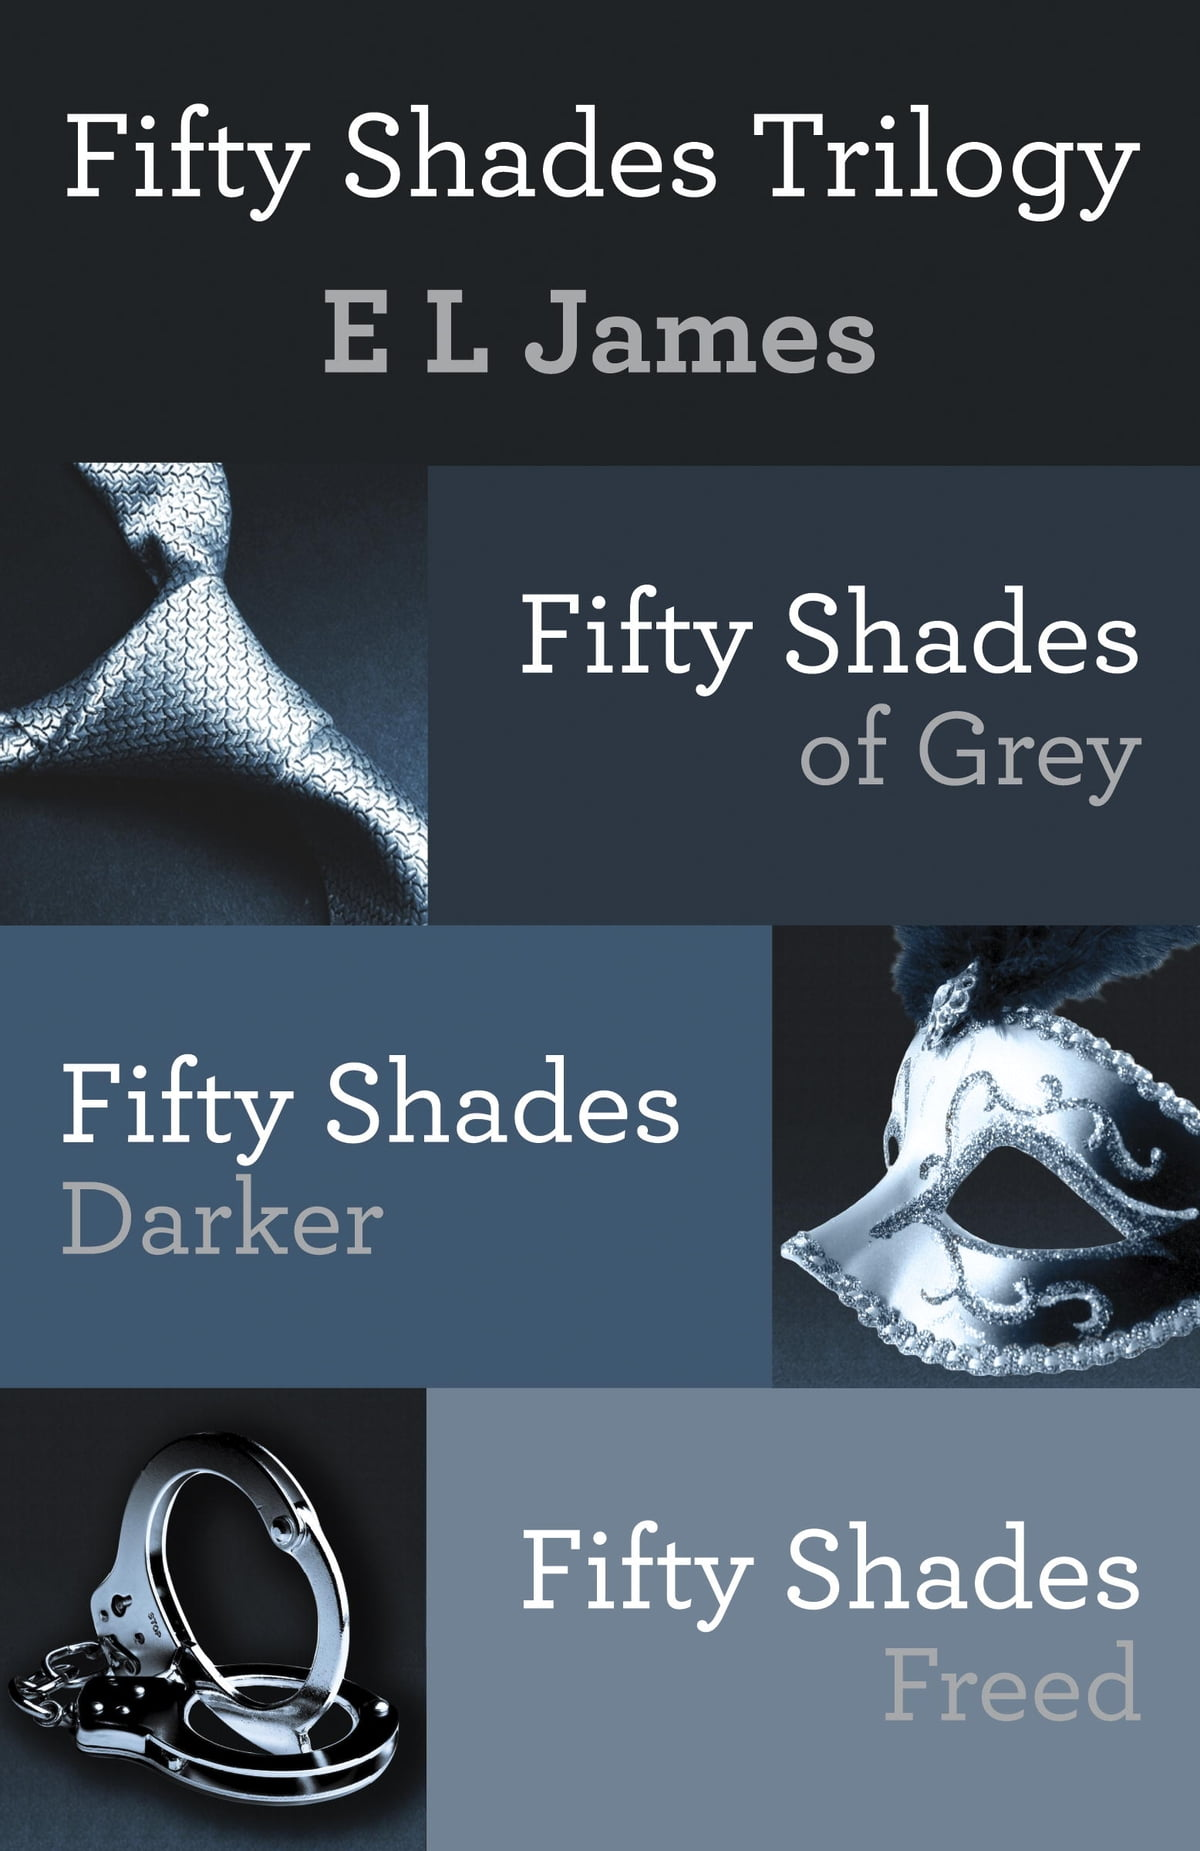 Fifty Shades Trilogy Bundle  Fifty Shades Of Grey; Fifty Shades Darker;  Fifty Shades